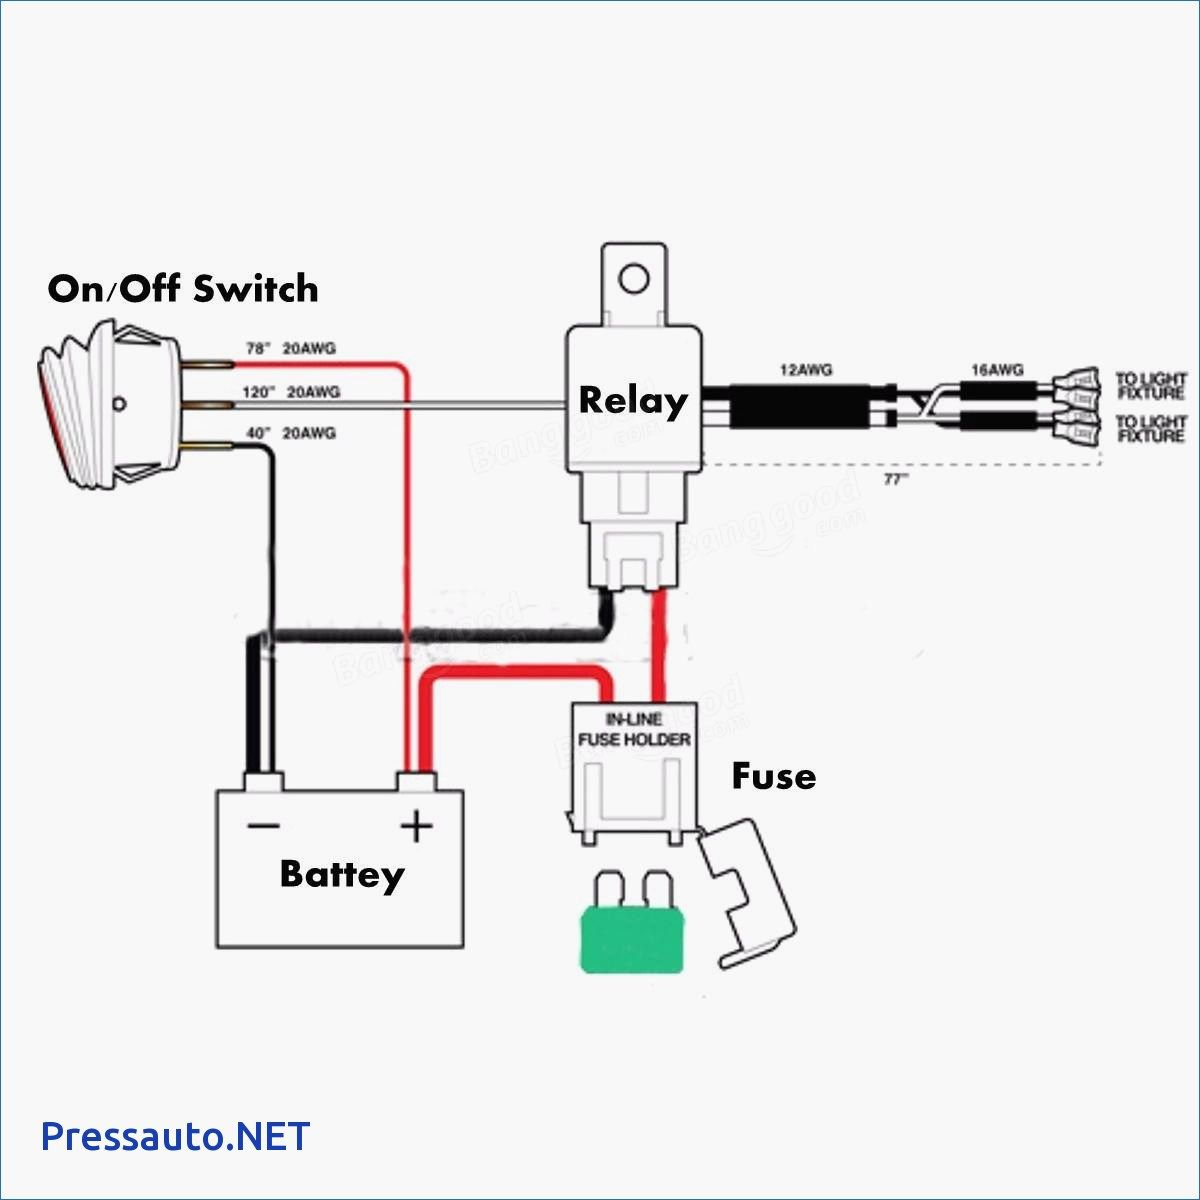 4 Pole Toggle Switch Wiring Diagram from i.pinimg.com